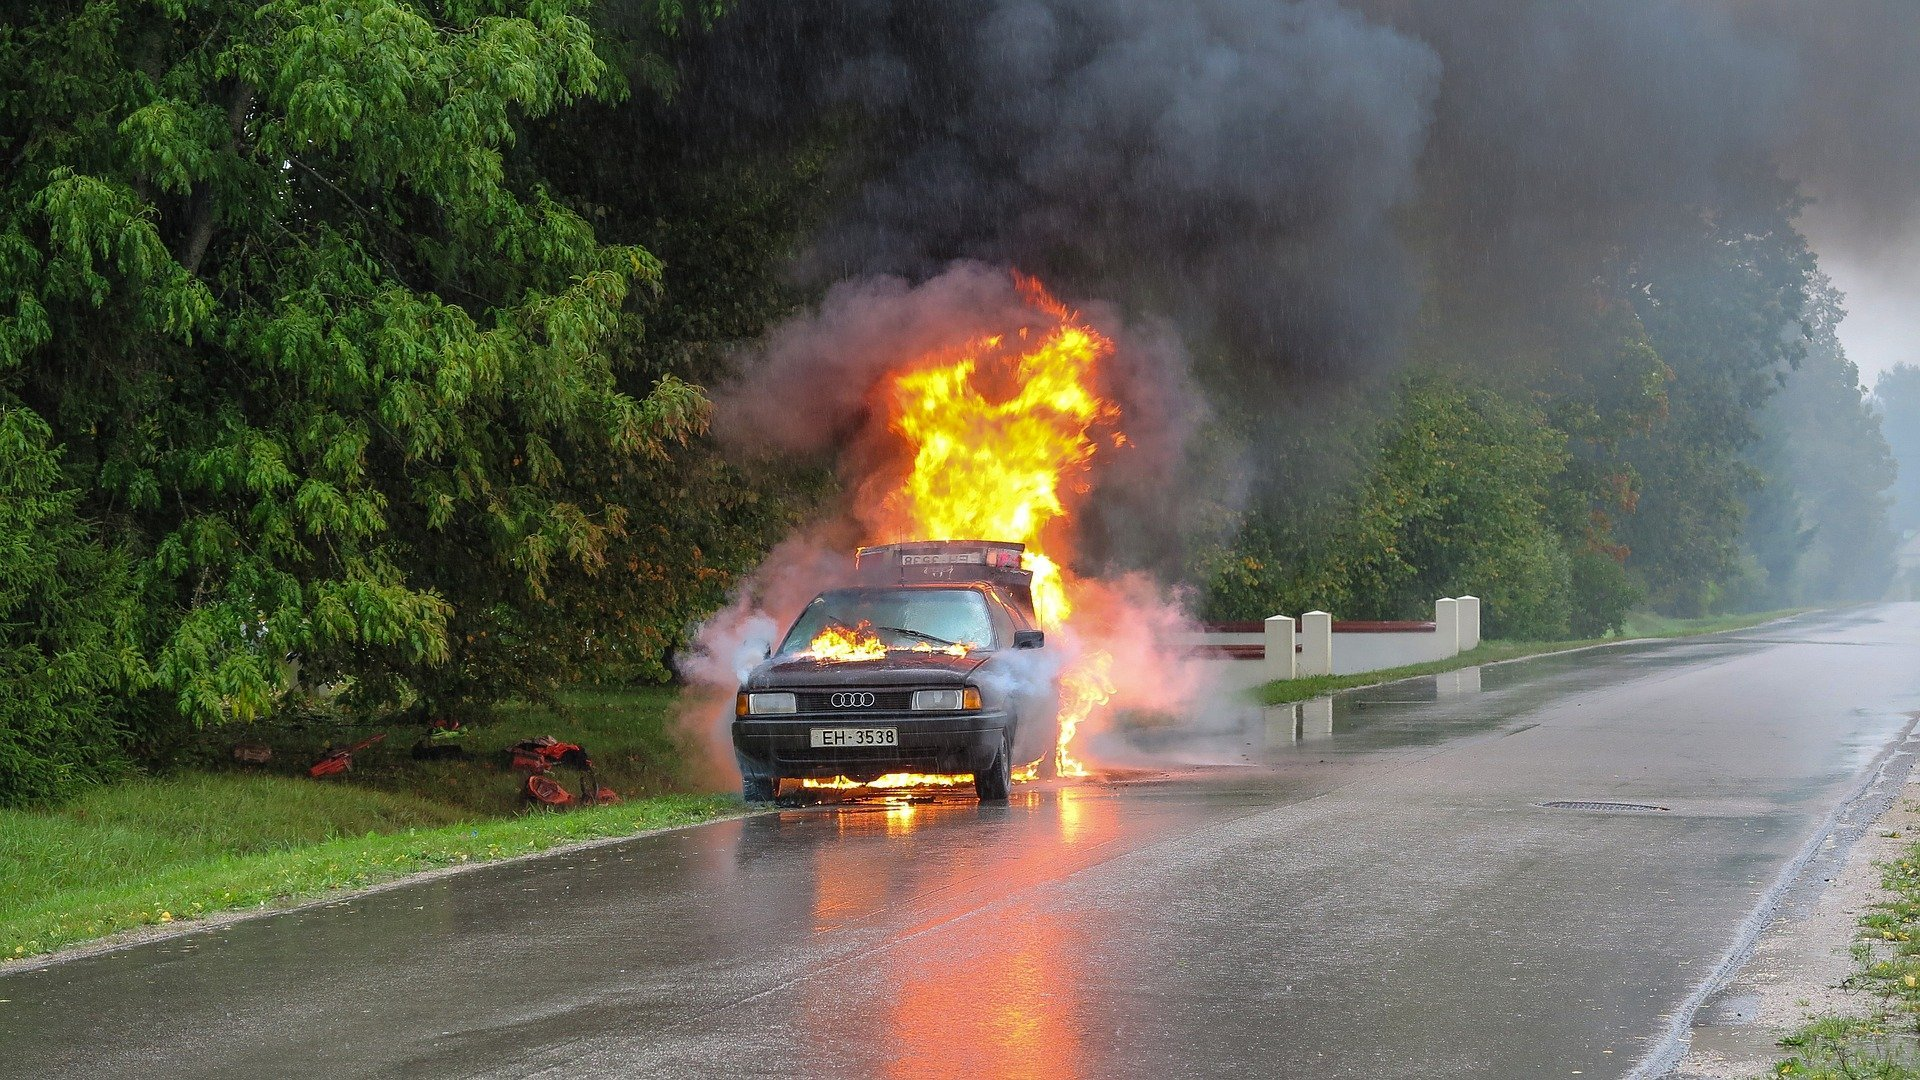 A photograph of a burning car on the side of the road | Source: Pixabay